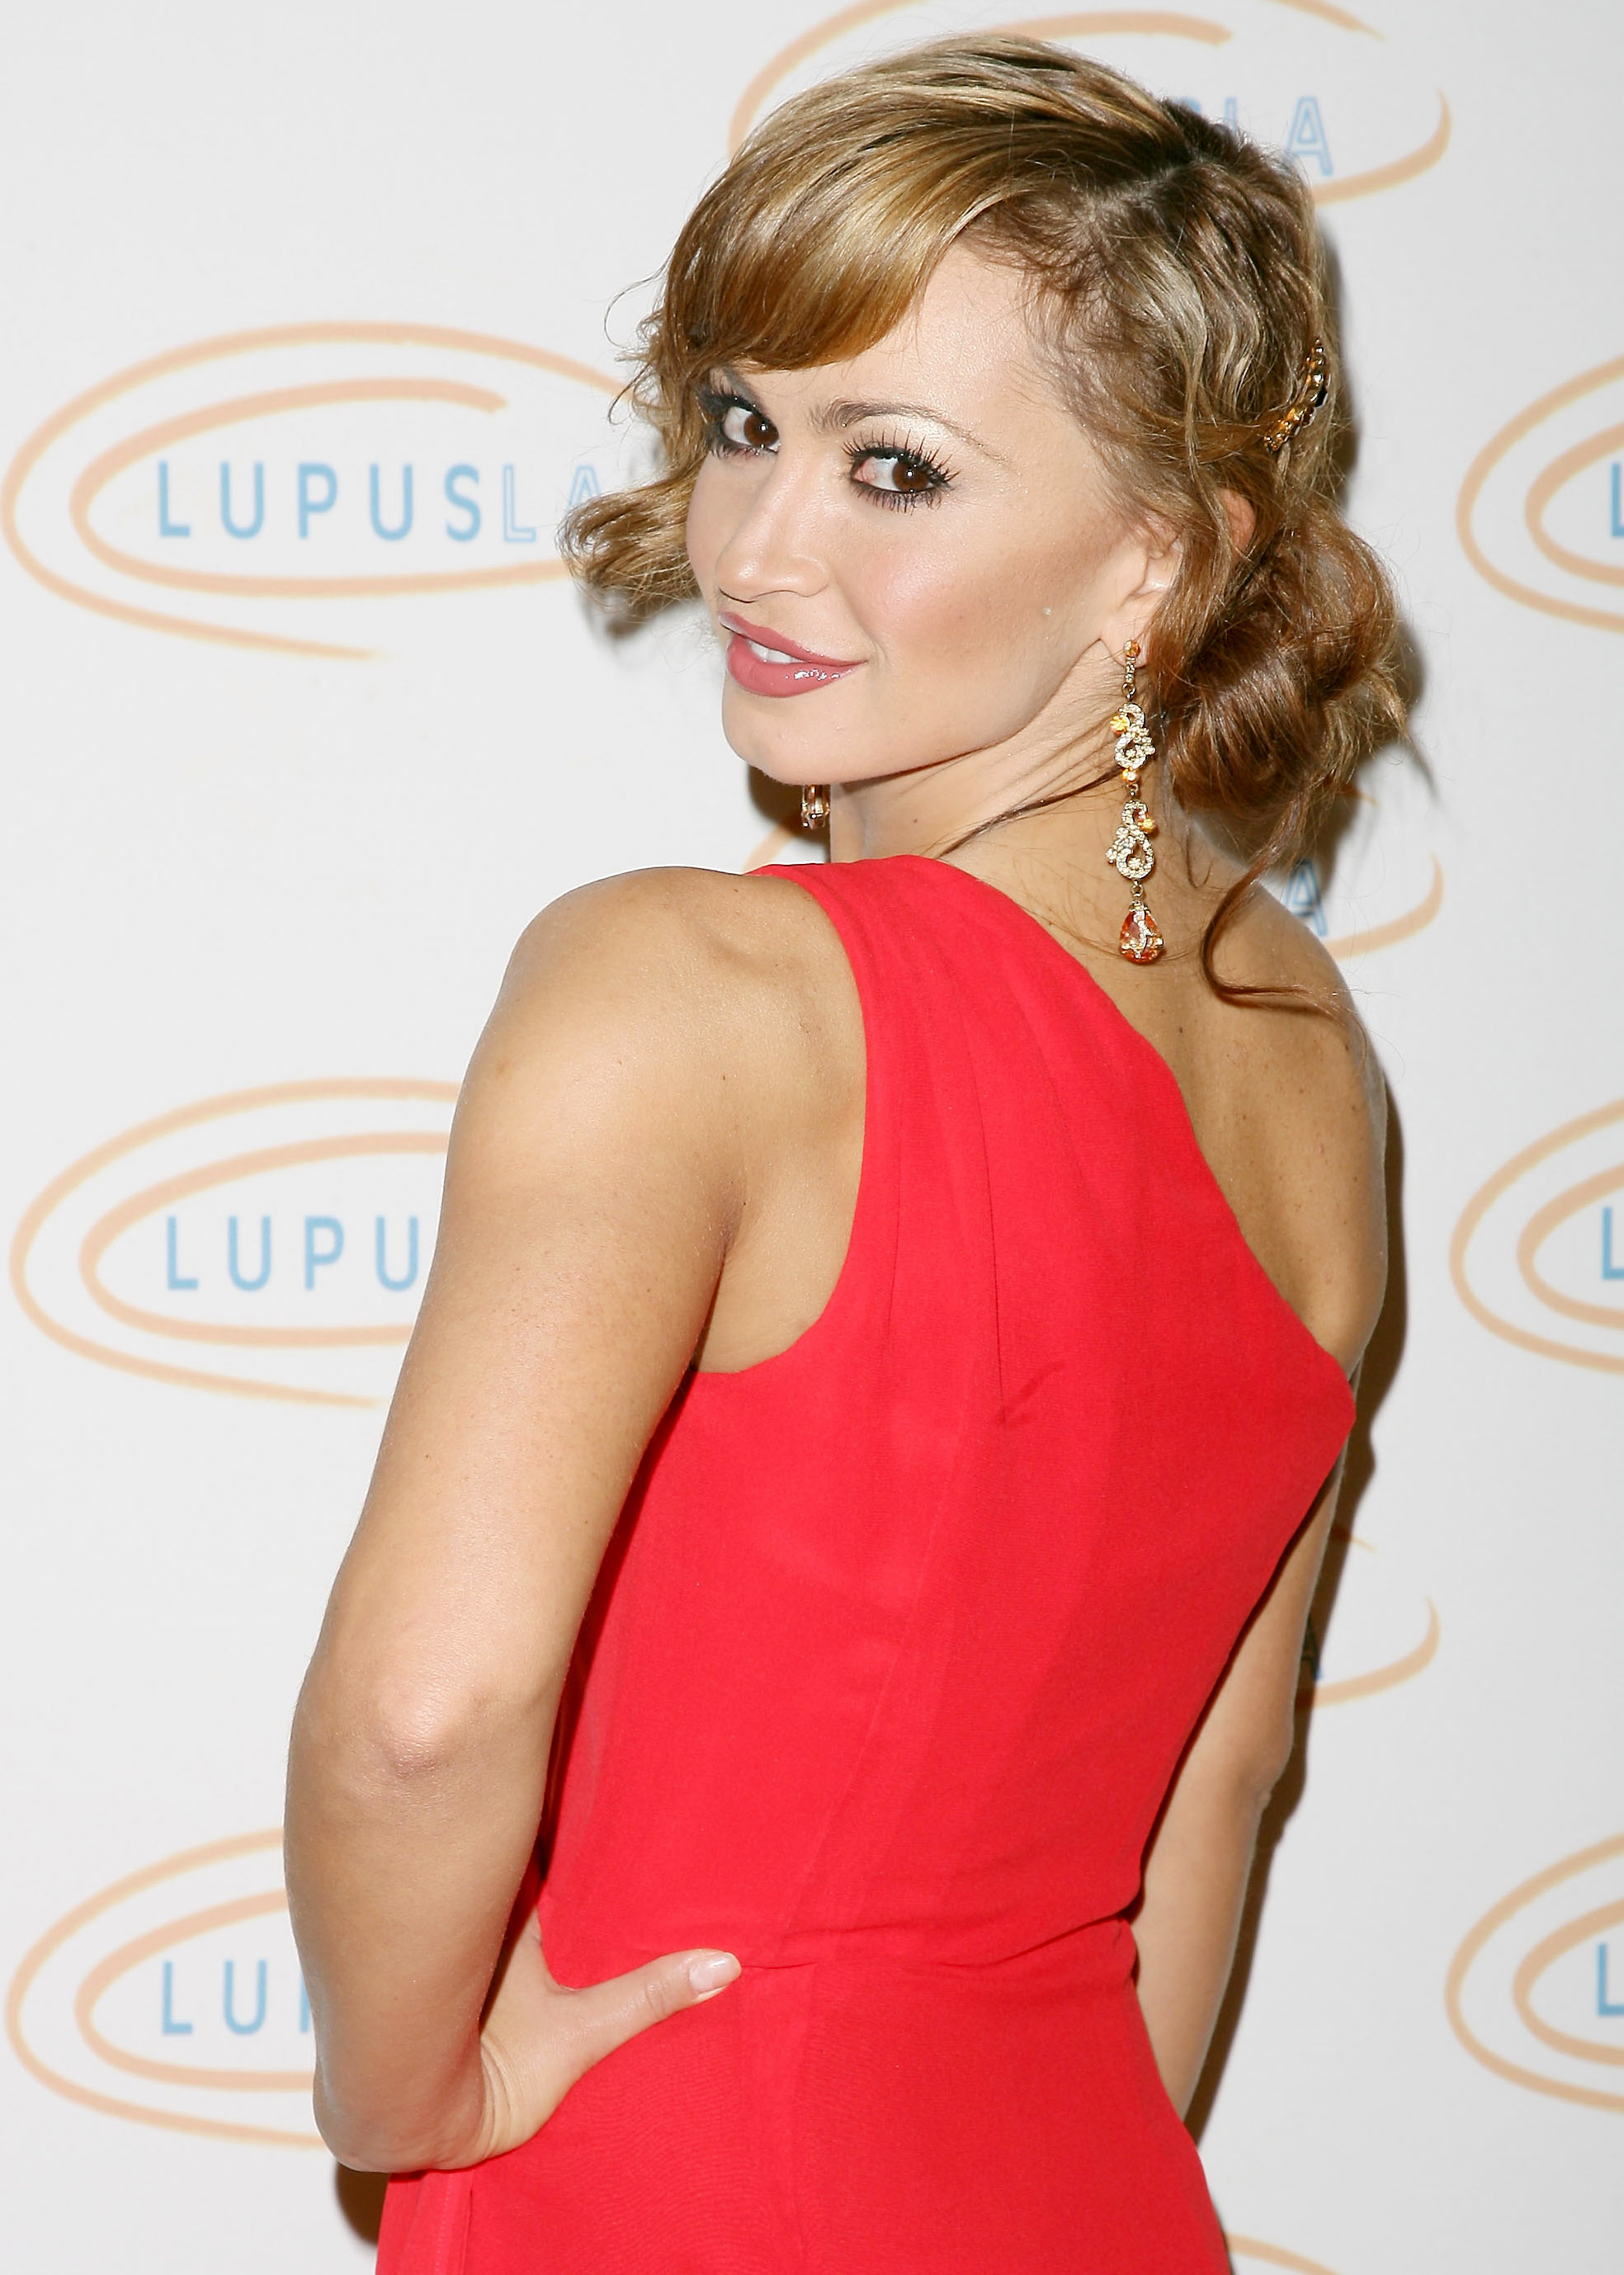 31090_Karina_Smirnoff_2008-11-07_-_Lupus_LA9s_Sixth_Annual_Hollywood_Bag_Ladies_Luncheon_in_Beverly_H_3245_122_889lo.jpg